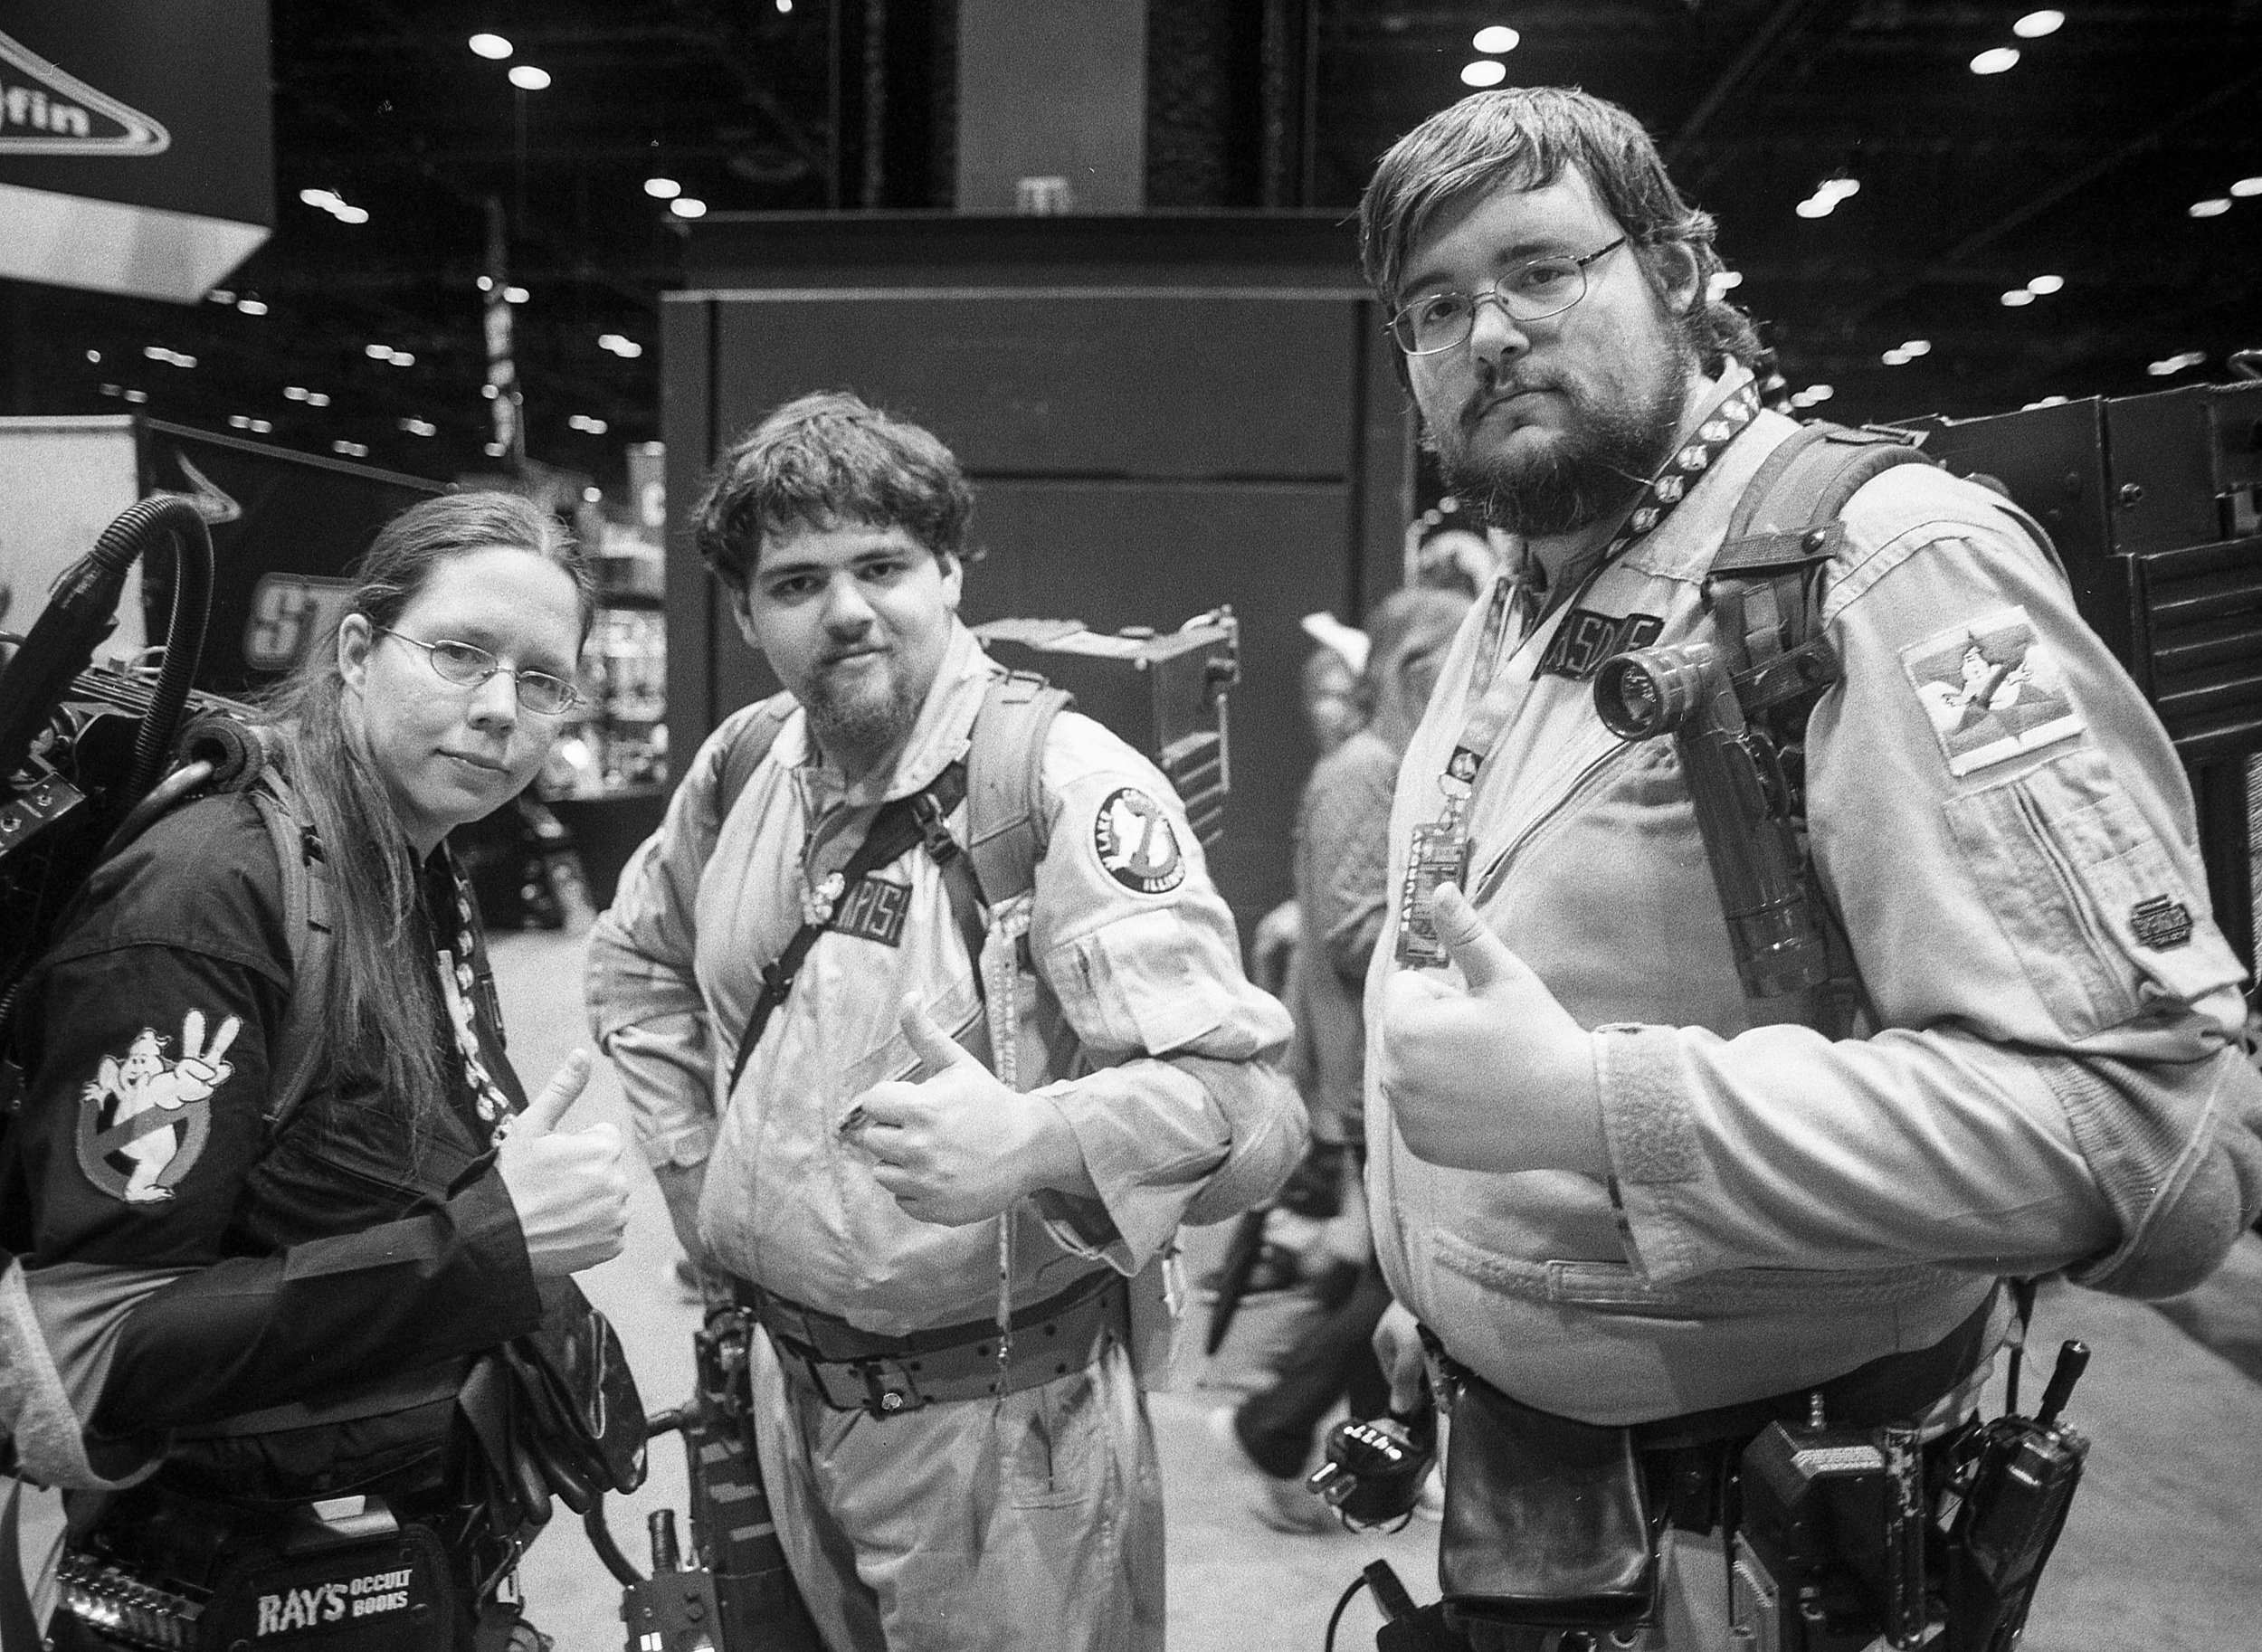 645_2018C2E2 and various008.jpg